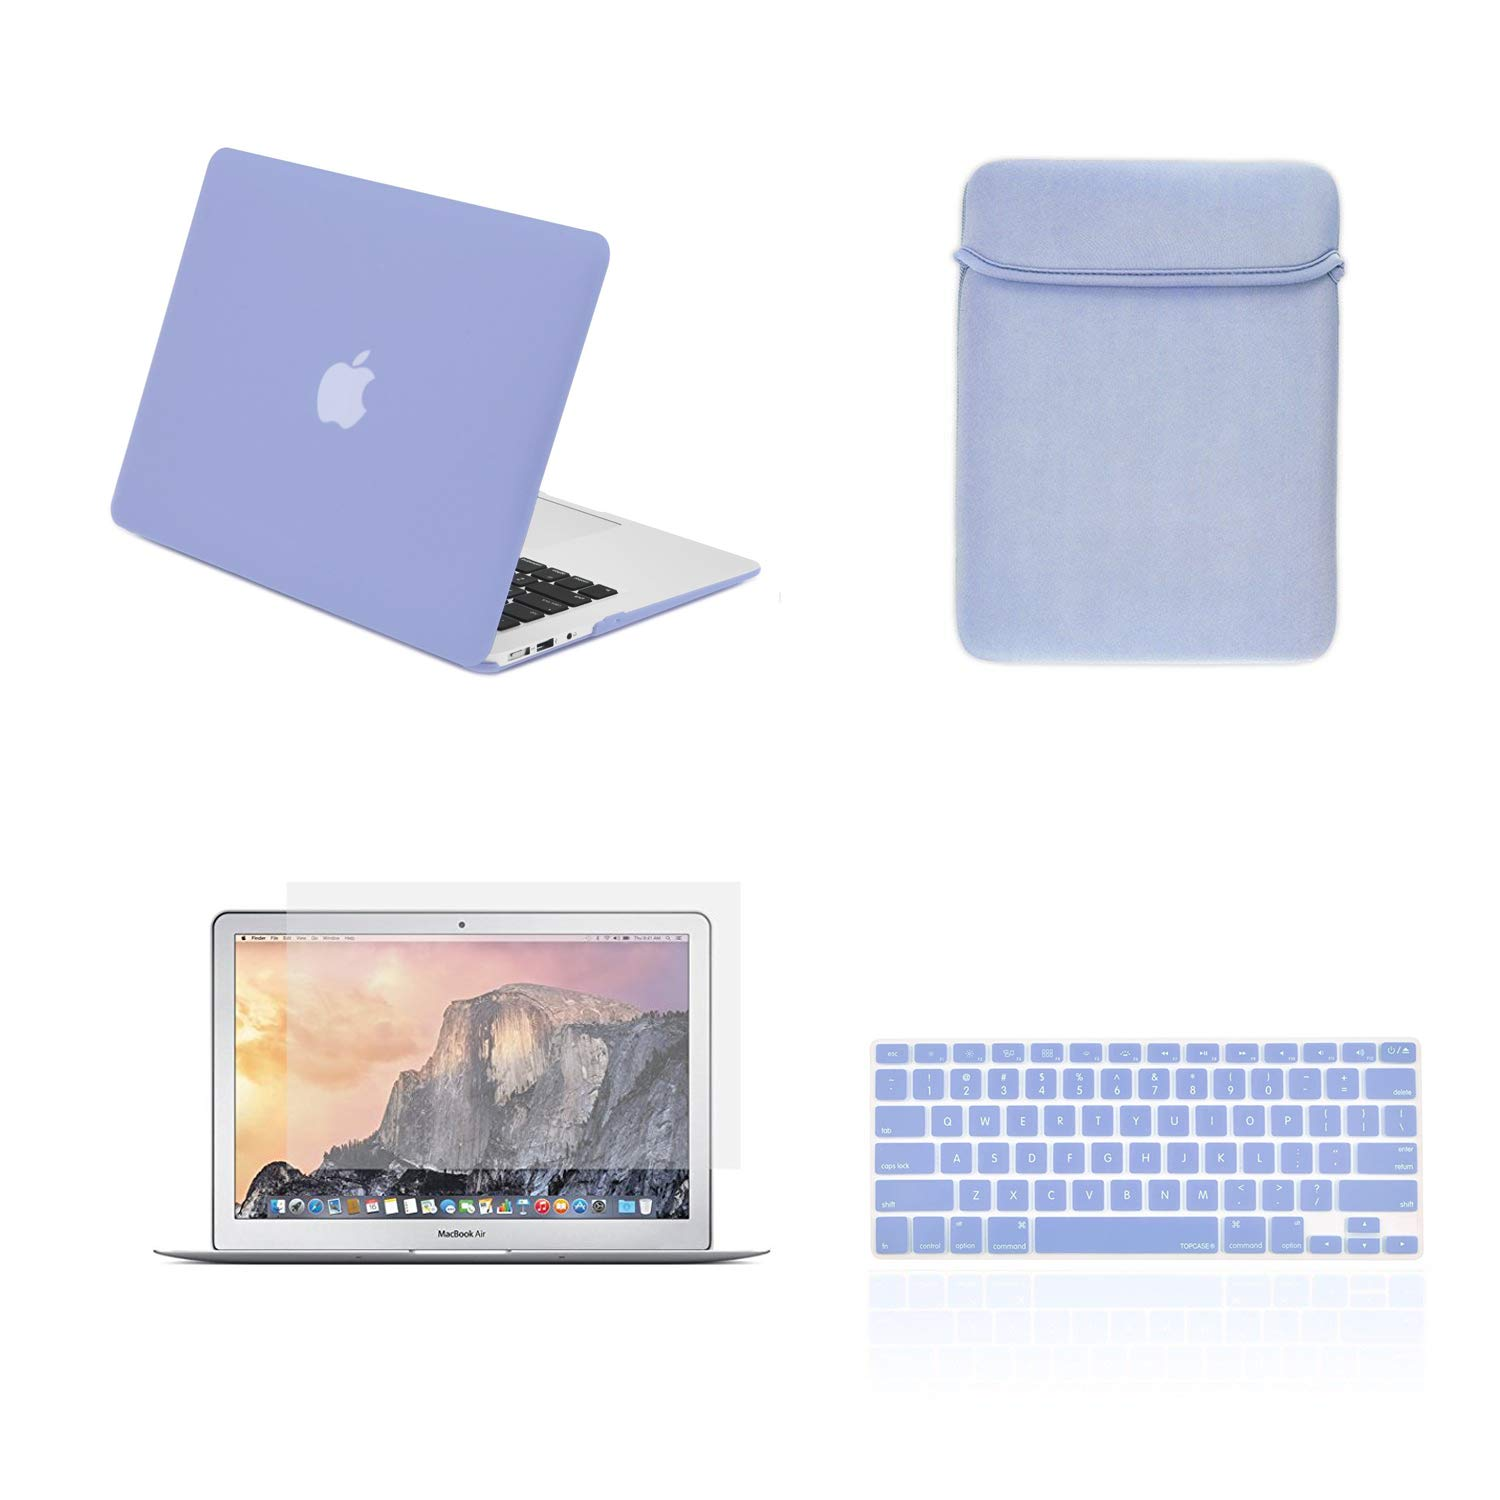 """TOP CASE - 4 in 1 Essential Bundle Hard Case, Keyboard Cover, Sleeve Bag, Screen Protector Compatible MacBook Air 13"""" Model: A1466 & A1369 (Older Version, Release 2010-2017) - Serenity Blue"""